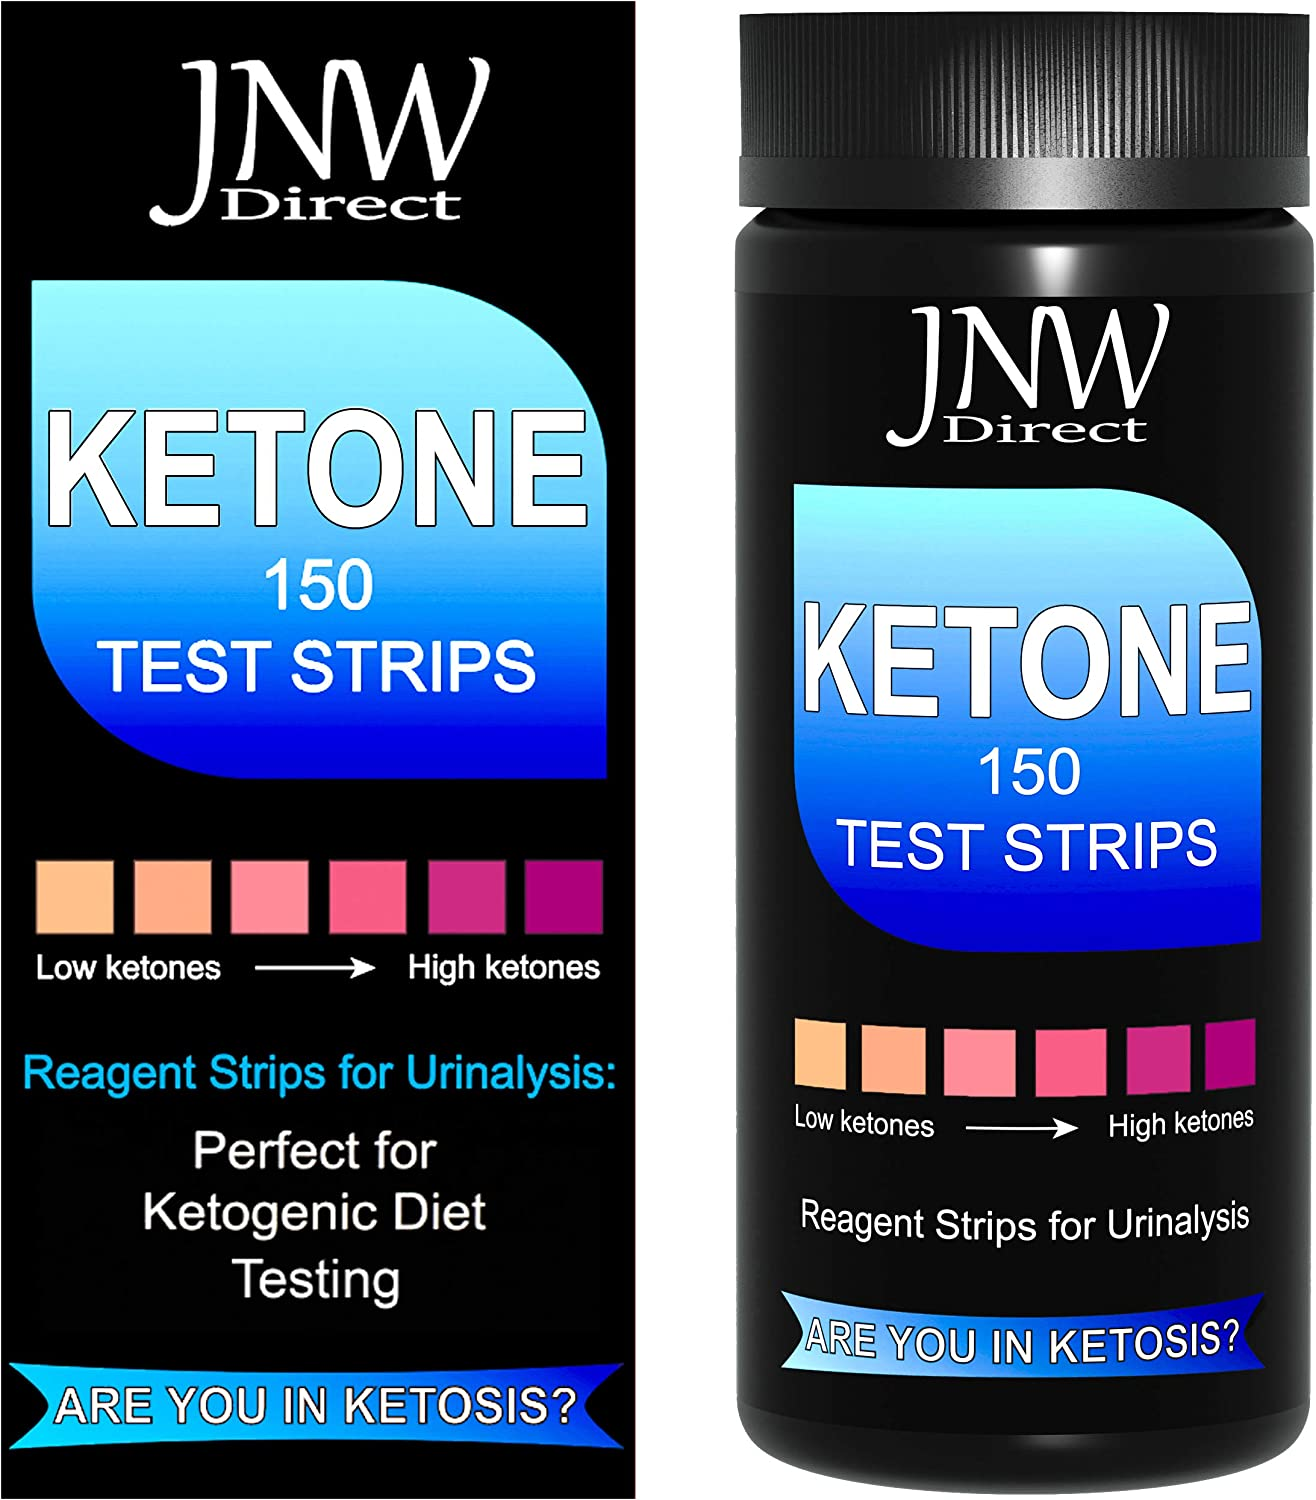 Ketone Test Strips, 150 Urinalysis Keto Test Strips for Testing Body Urine Ketosis Levels, Perfect Kit for Ketogenic and Weight Loss Diets, Free App & Ebook Included: Health & Personal Care